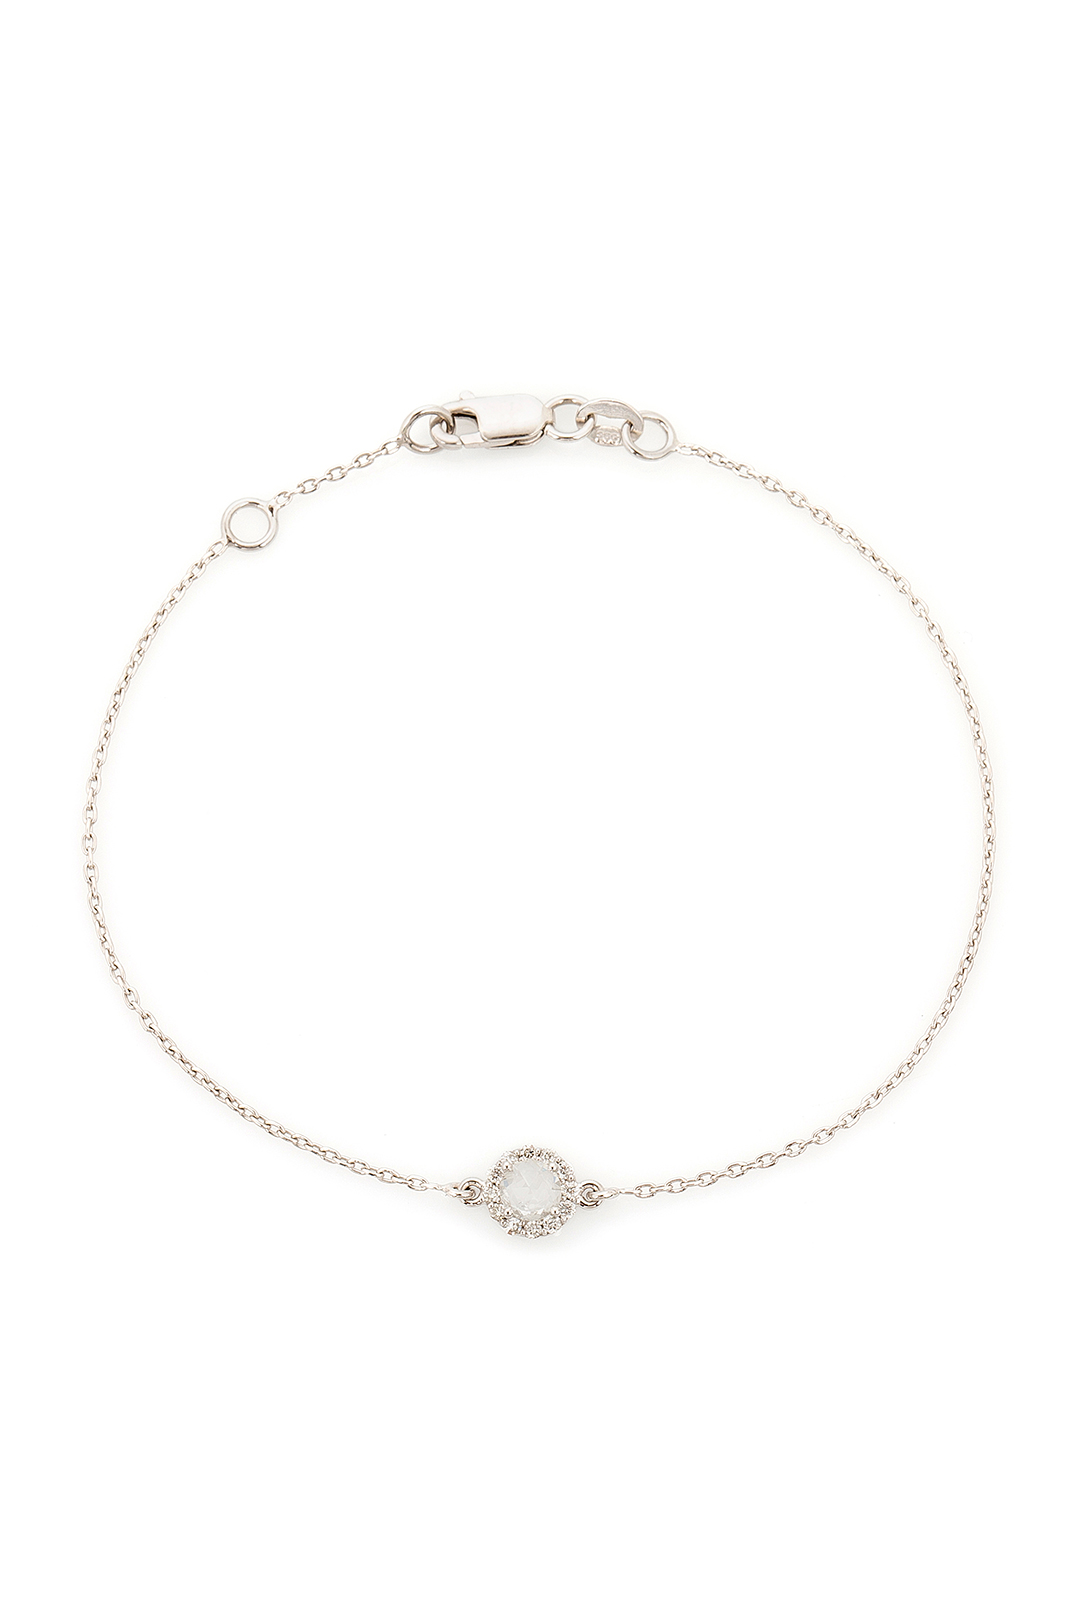 ROUND WHITE SAPPHIRE AND DIAMOND BRACELET